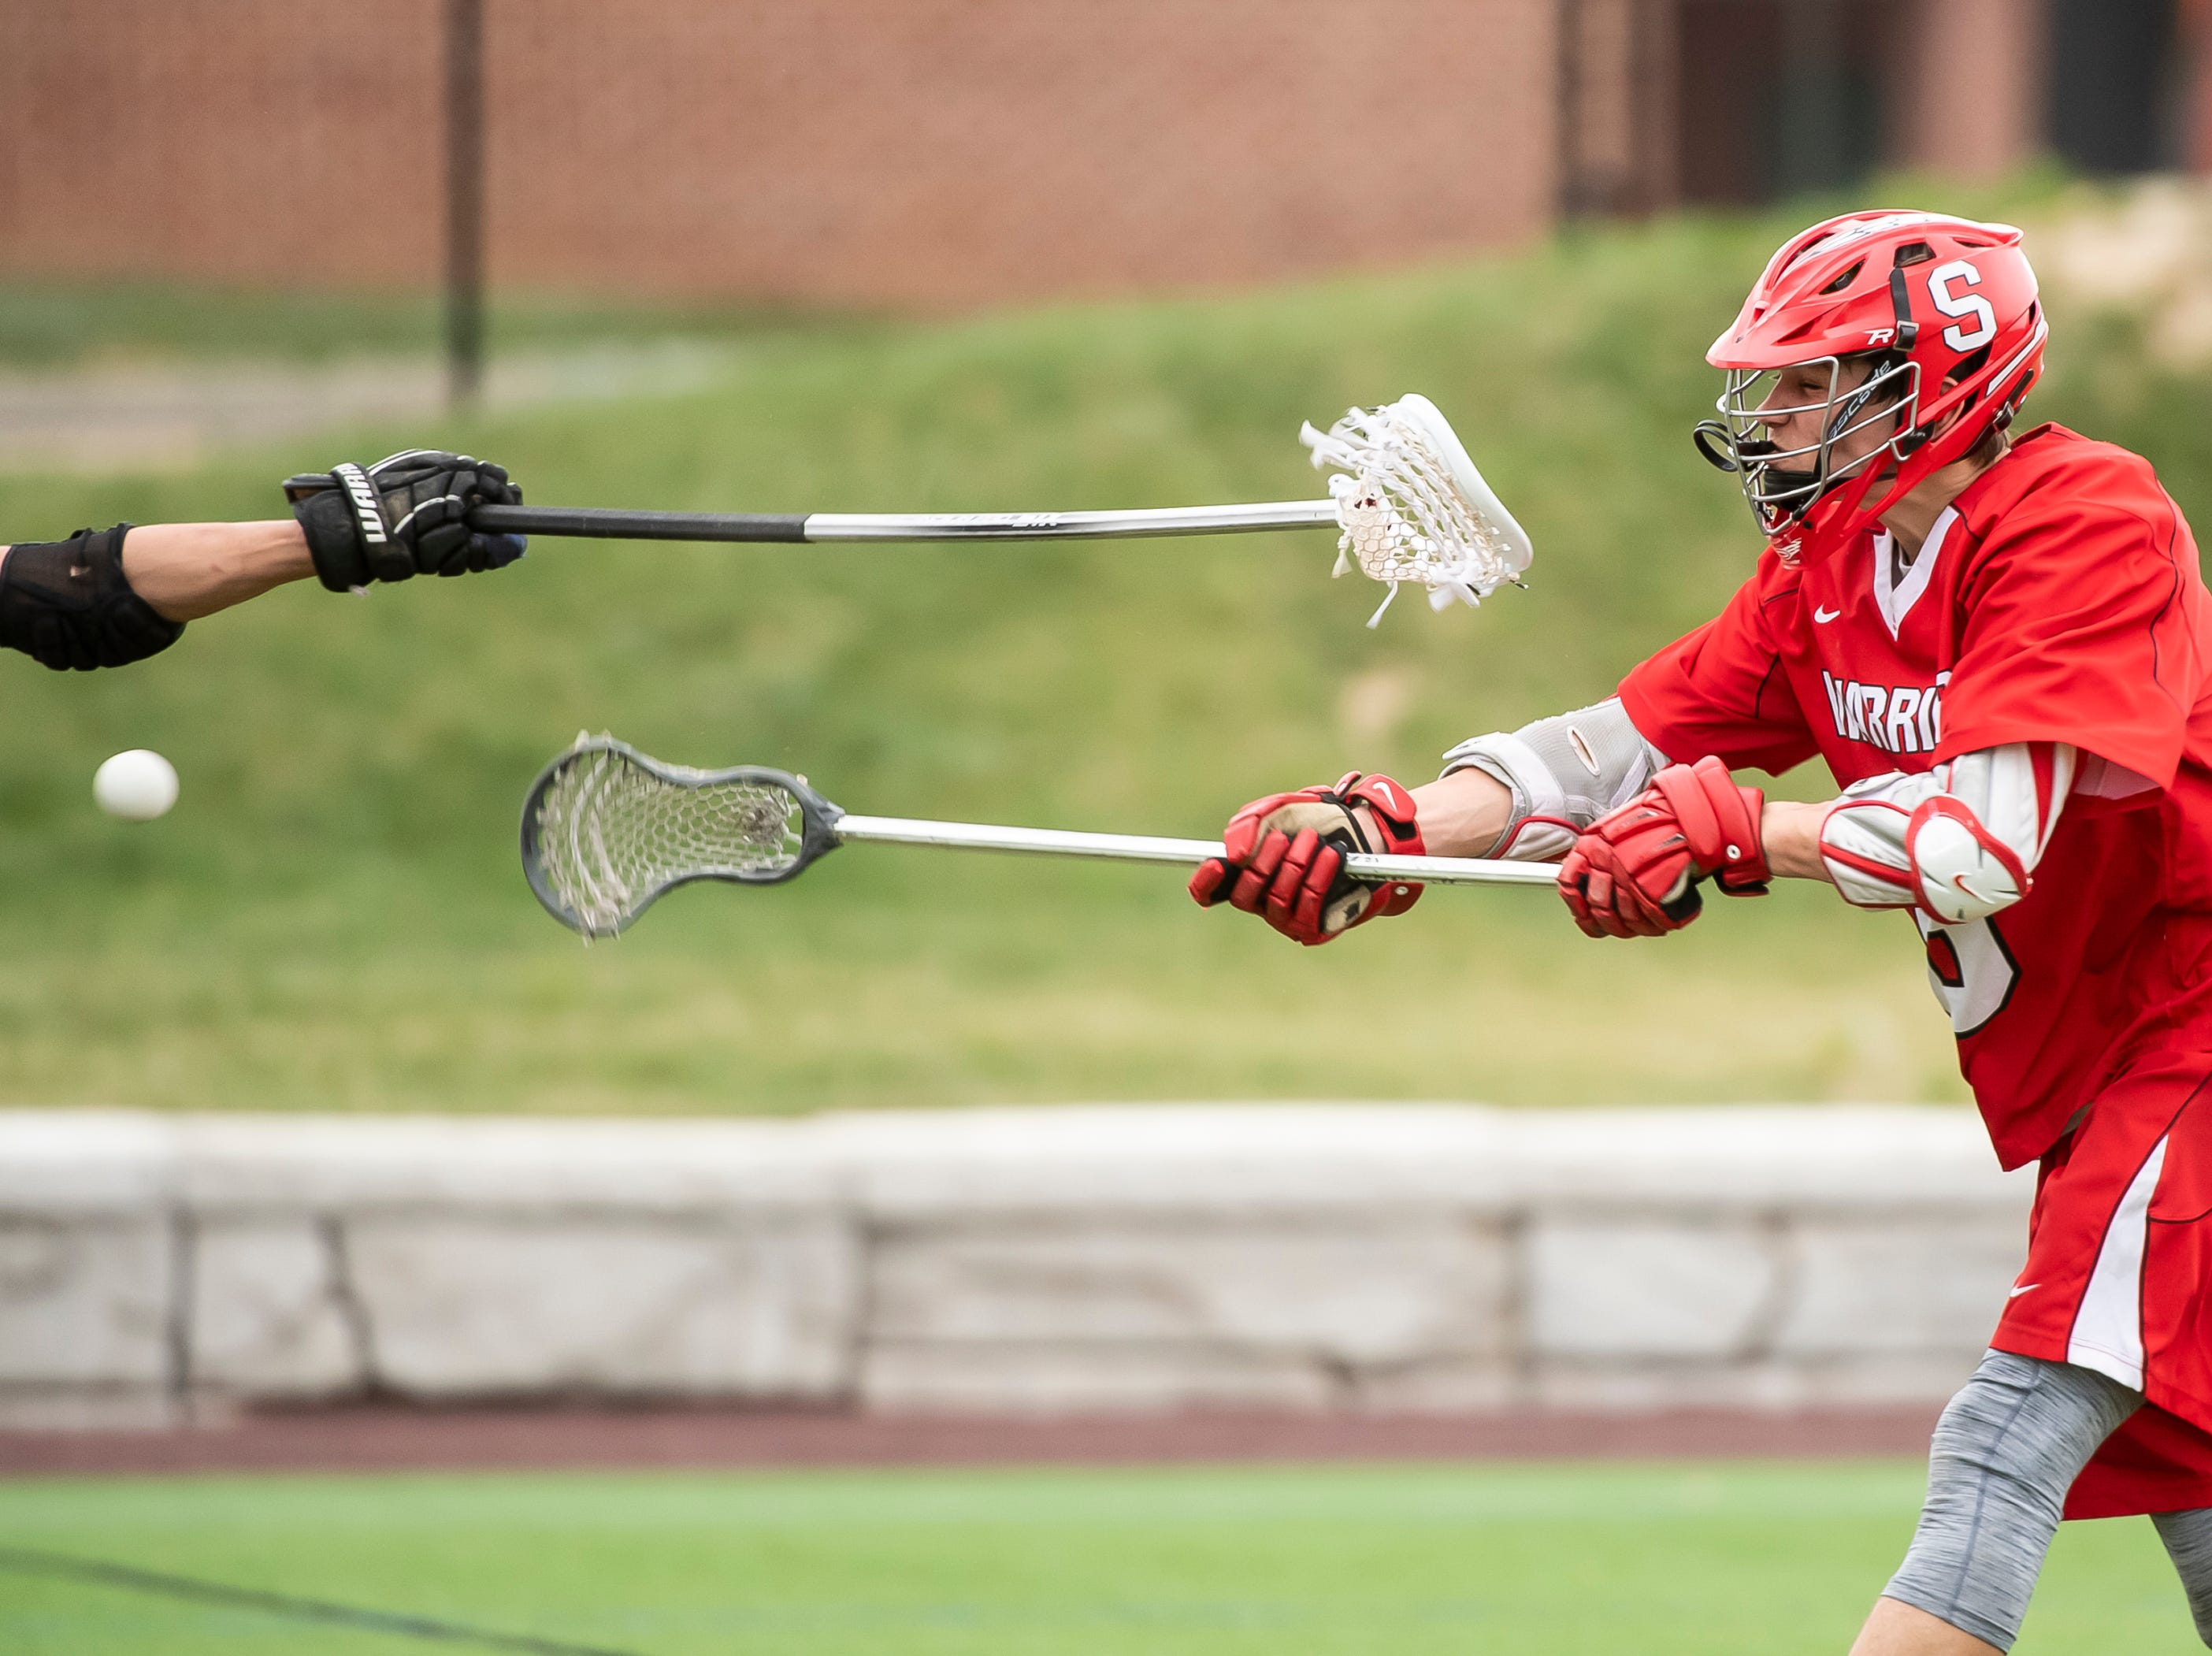 Susquehannock's Ben Wilson takes a shot during a YAIAA lacrosse game against South Western in Hanover on Monday, April 8, 2019. Susquehannock won 14-3.